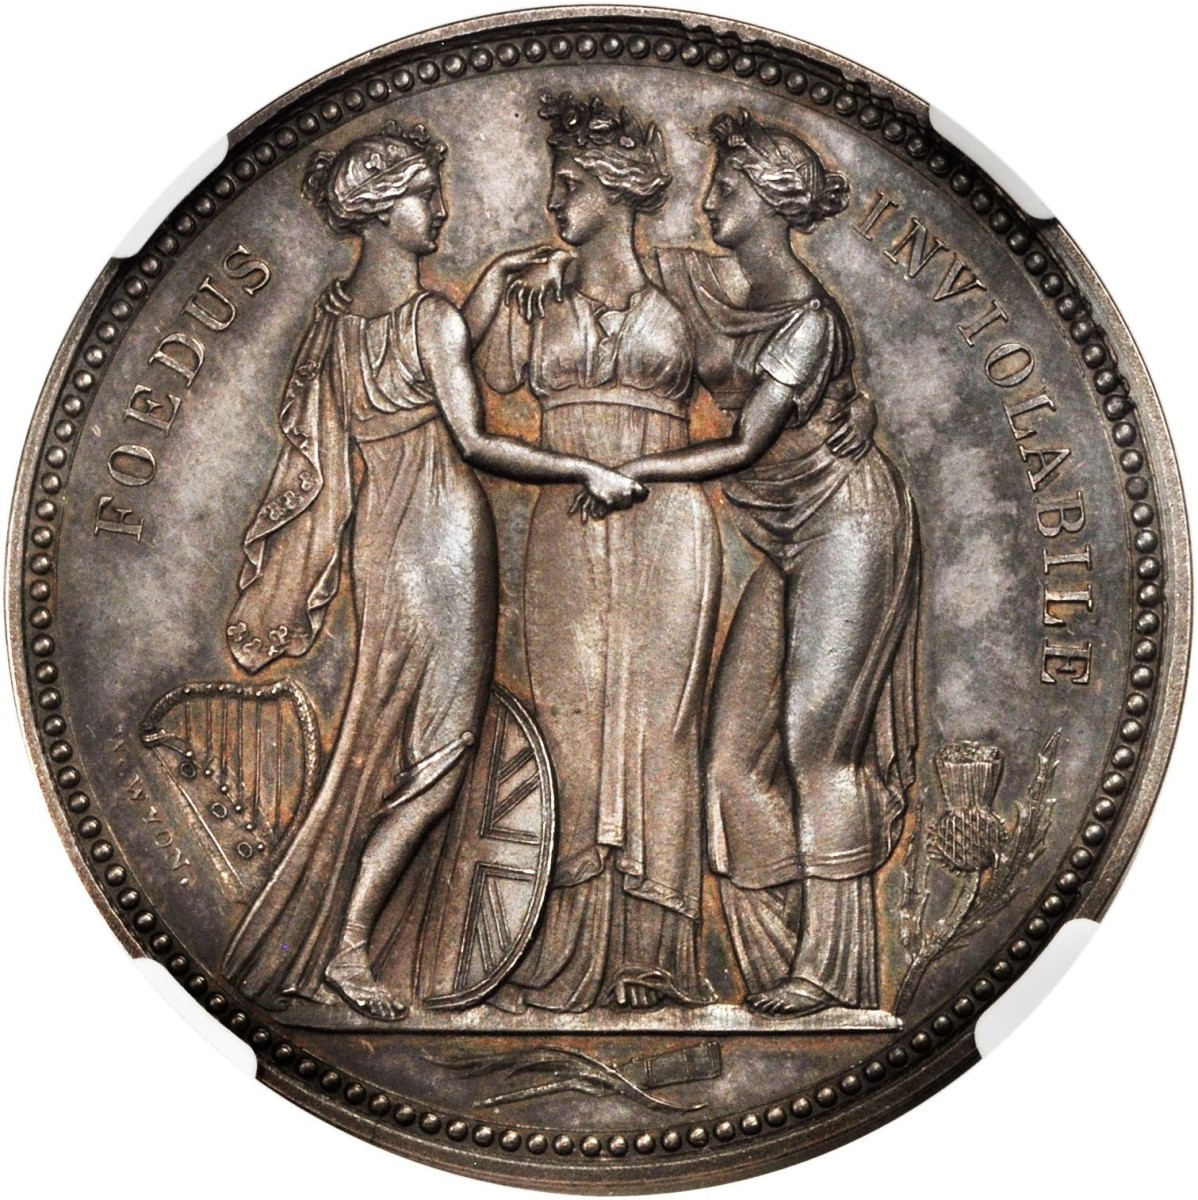 Beauty personified: reverse of William Wyon's Three Graces proof pattern silver crown of 1817. The coin goes to the block in NGC-PR64+ Cameo with an estimate of $130,000-170,000. Image courtesy Stack's-Bowers.